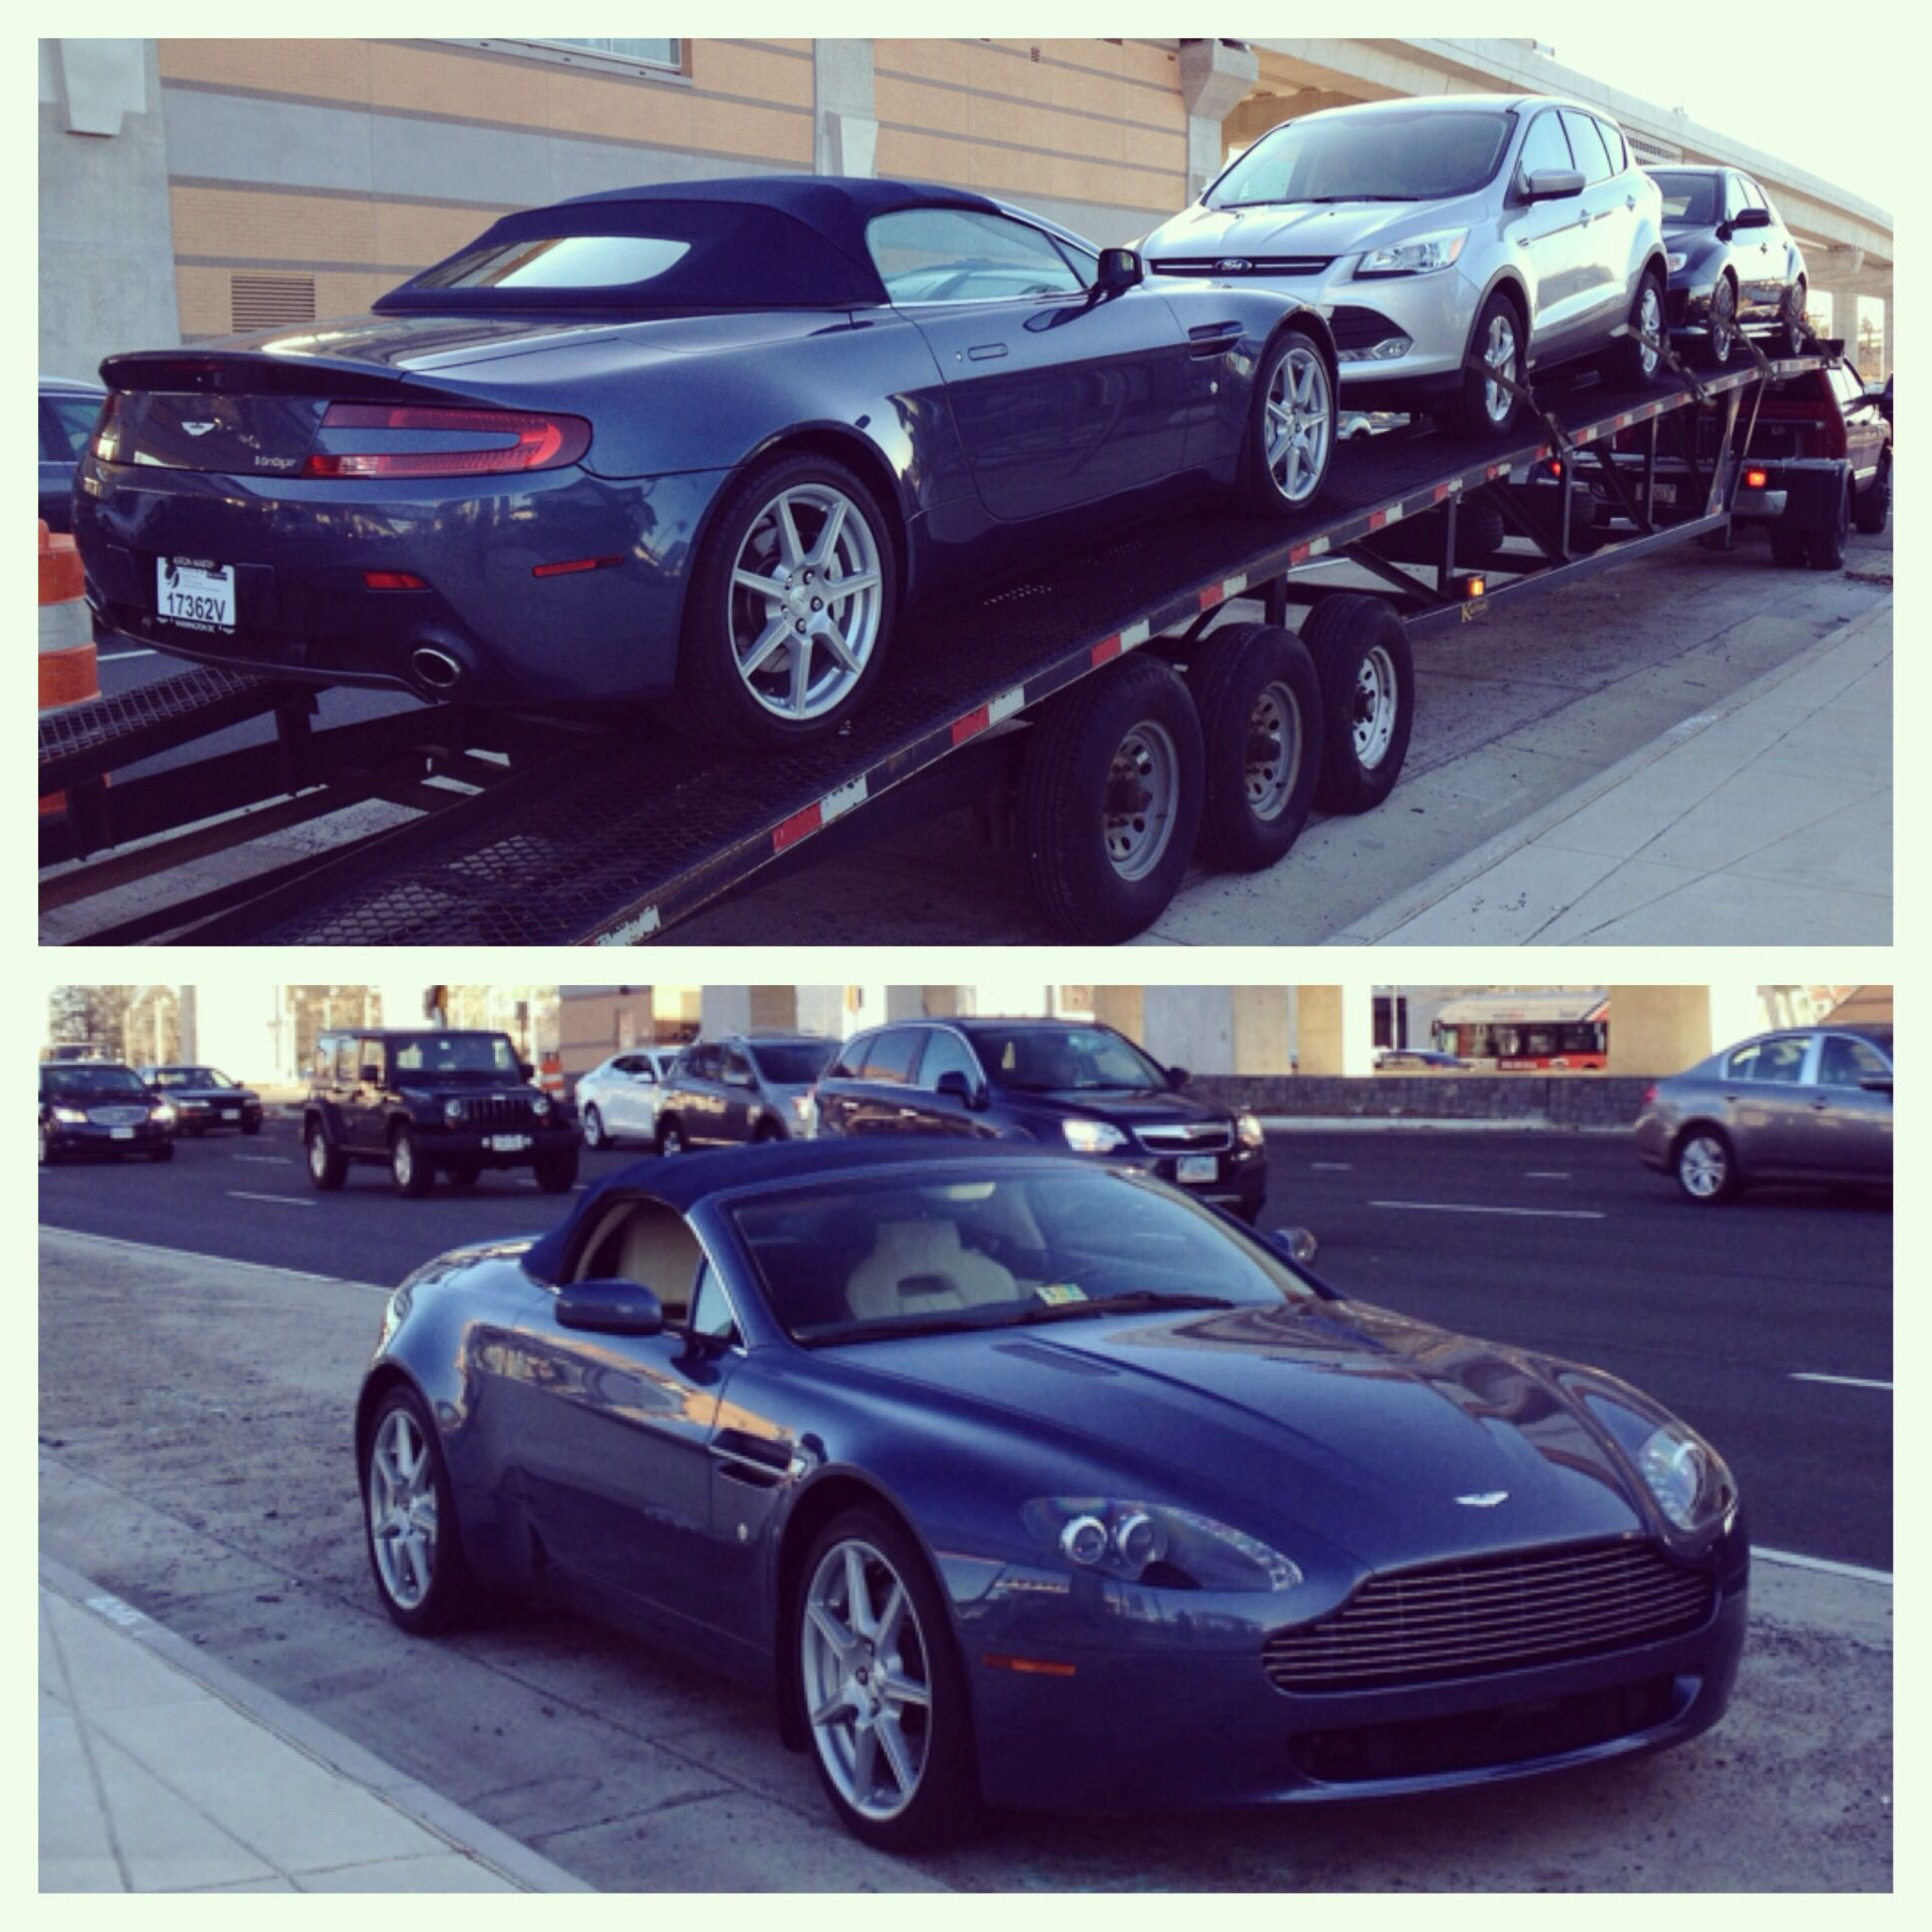 2008 Aston Martin Vantage Camshaft: Eric Your Beautiful 2008 Aston Martin Vantage V8 Roadster